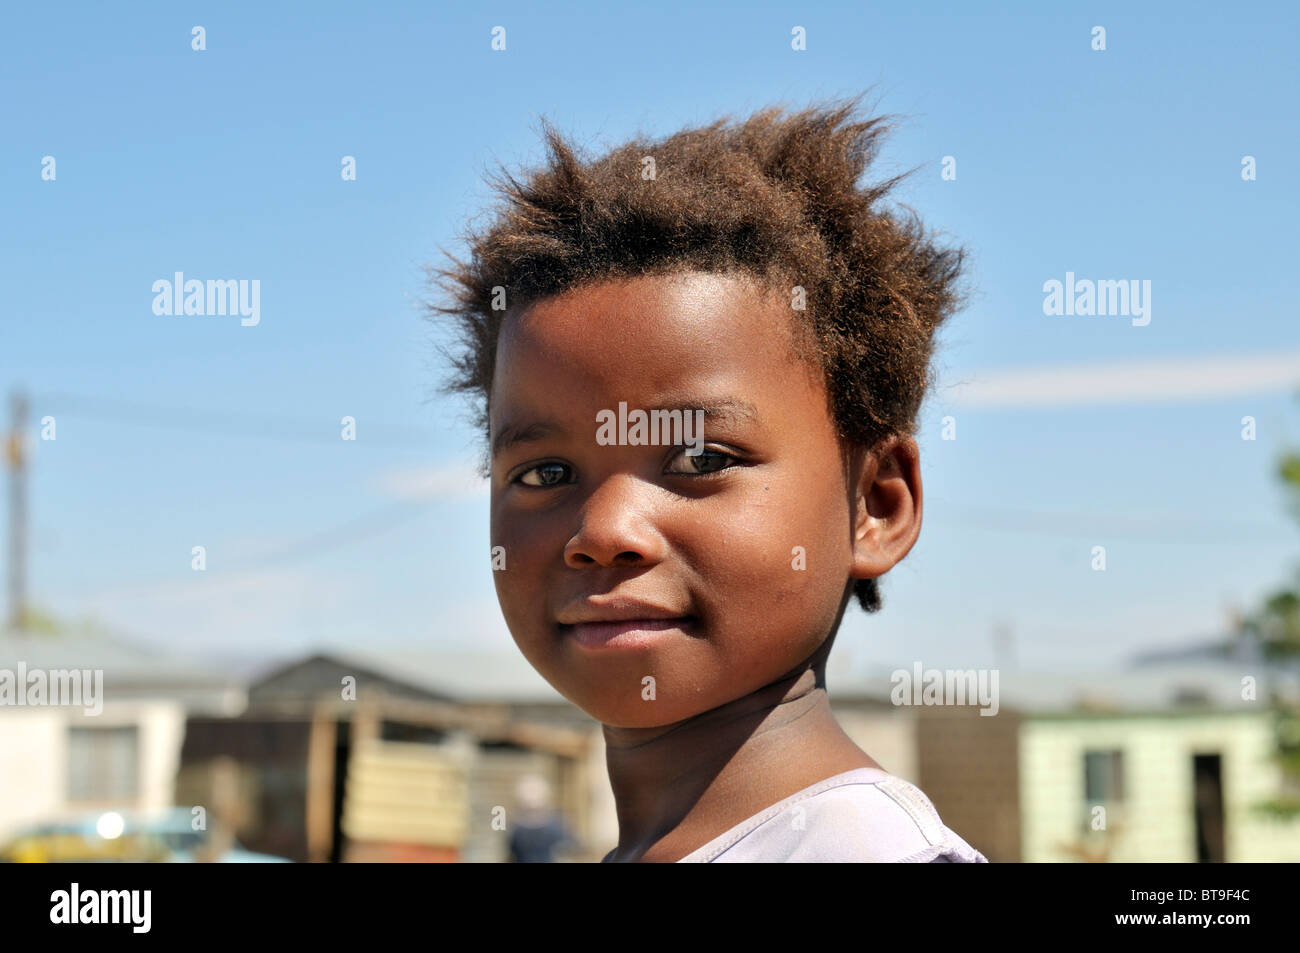 Portrait of a girl with confident gaze, slum, township, Queenstown, Eastern Cape, South Africa, Africa - Stock Image